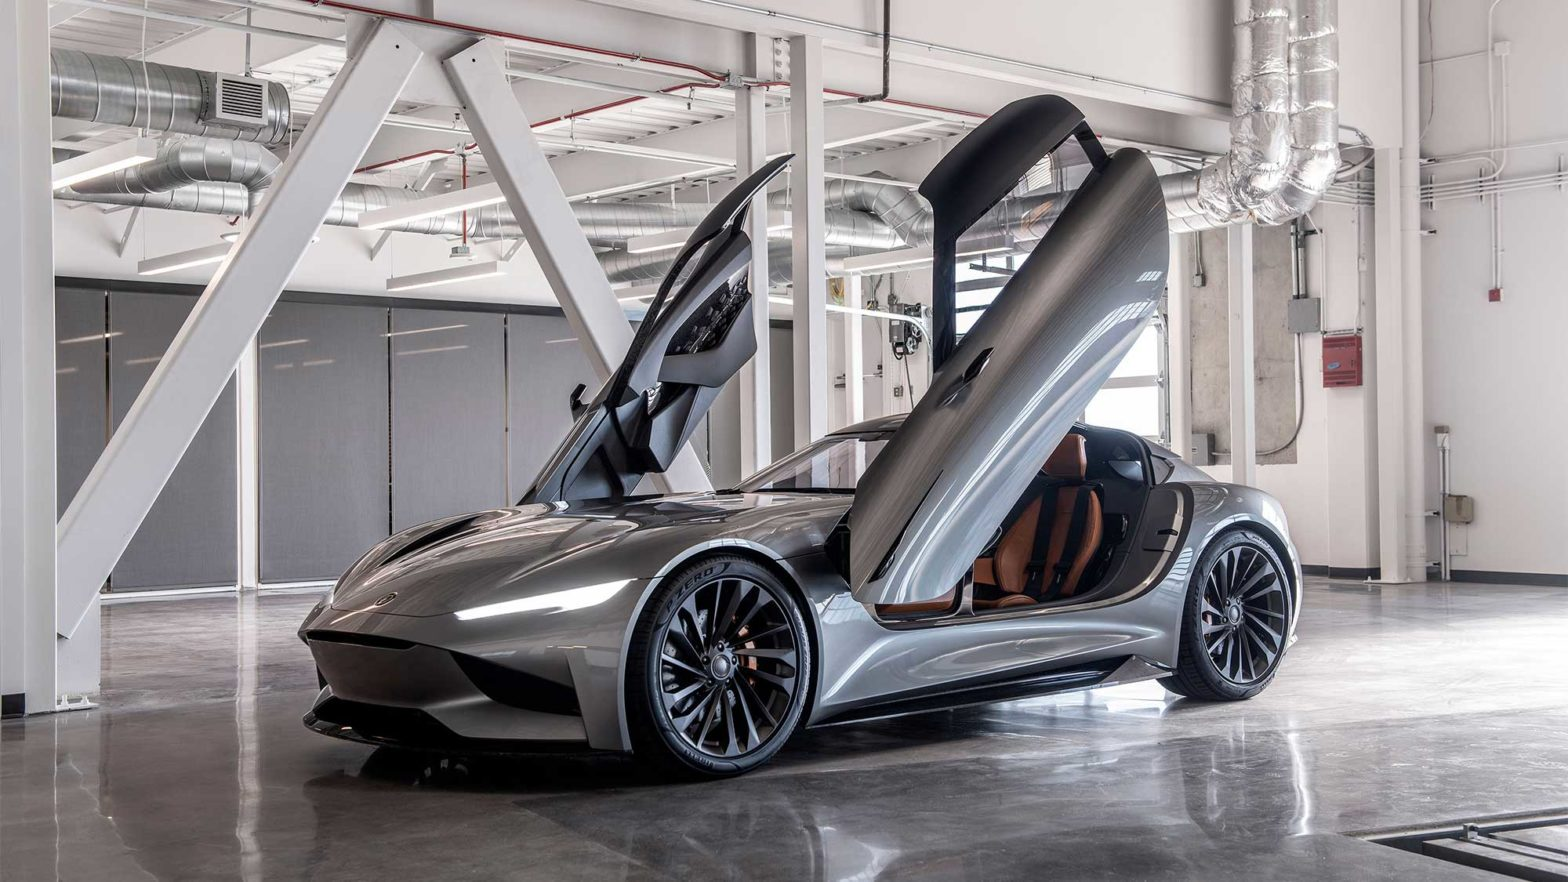 Karma SC2 Vision Concept Electric Vehicle